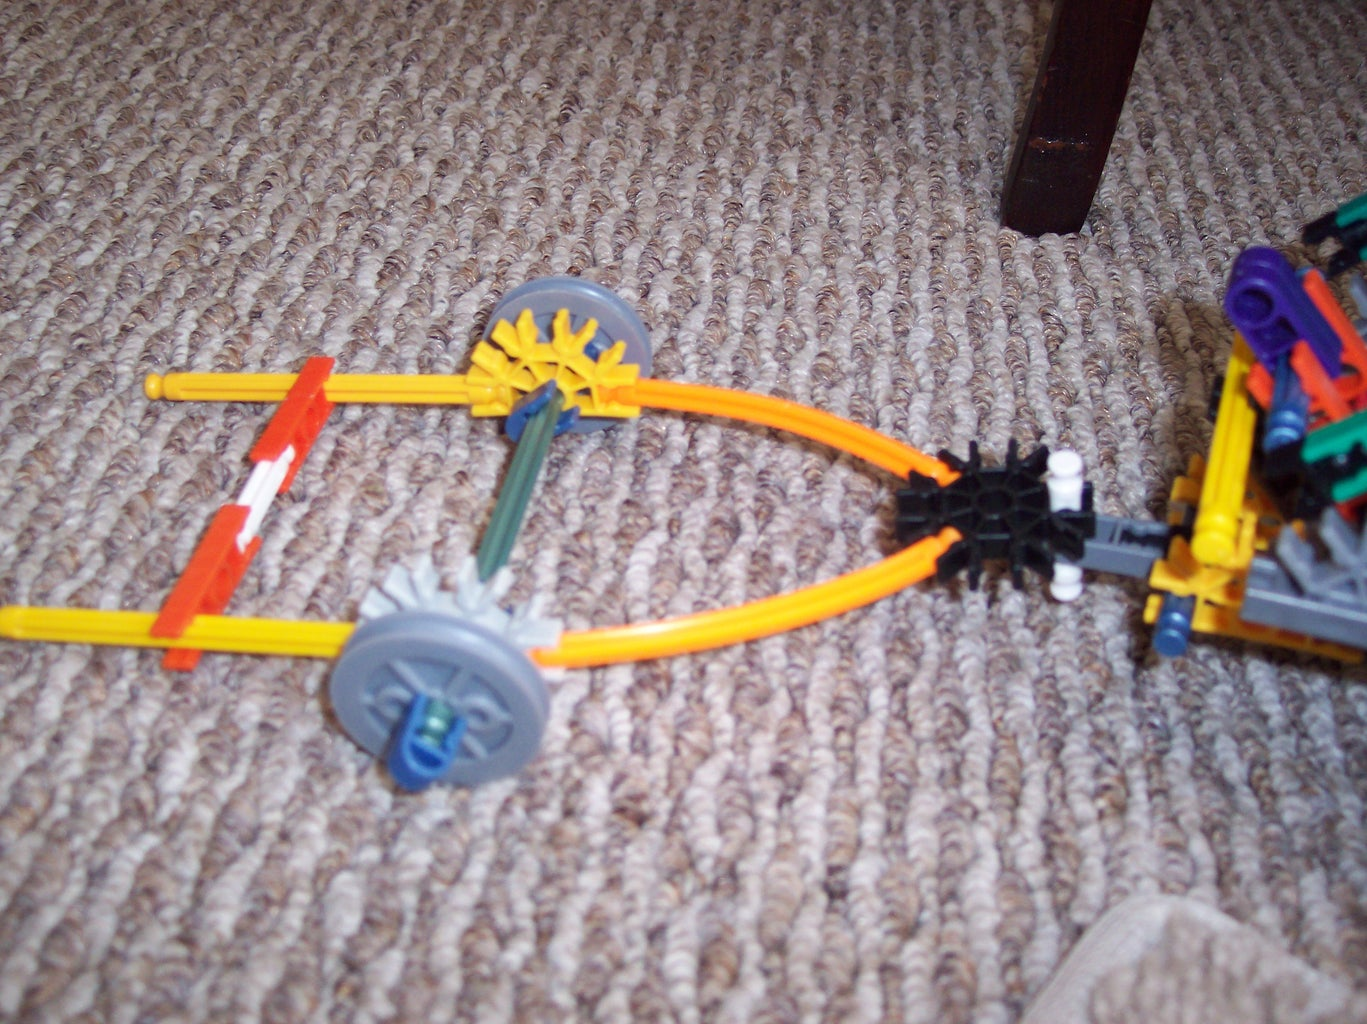 How to Make a Knex Trailer and Hitch for a Knex Mini Suspension Truck